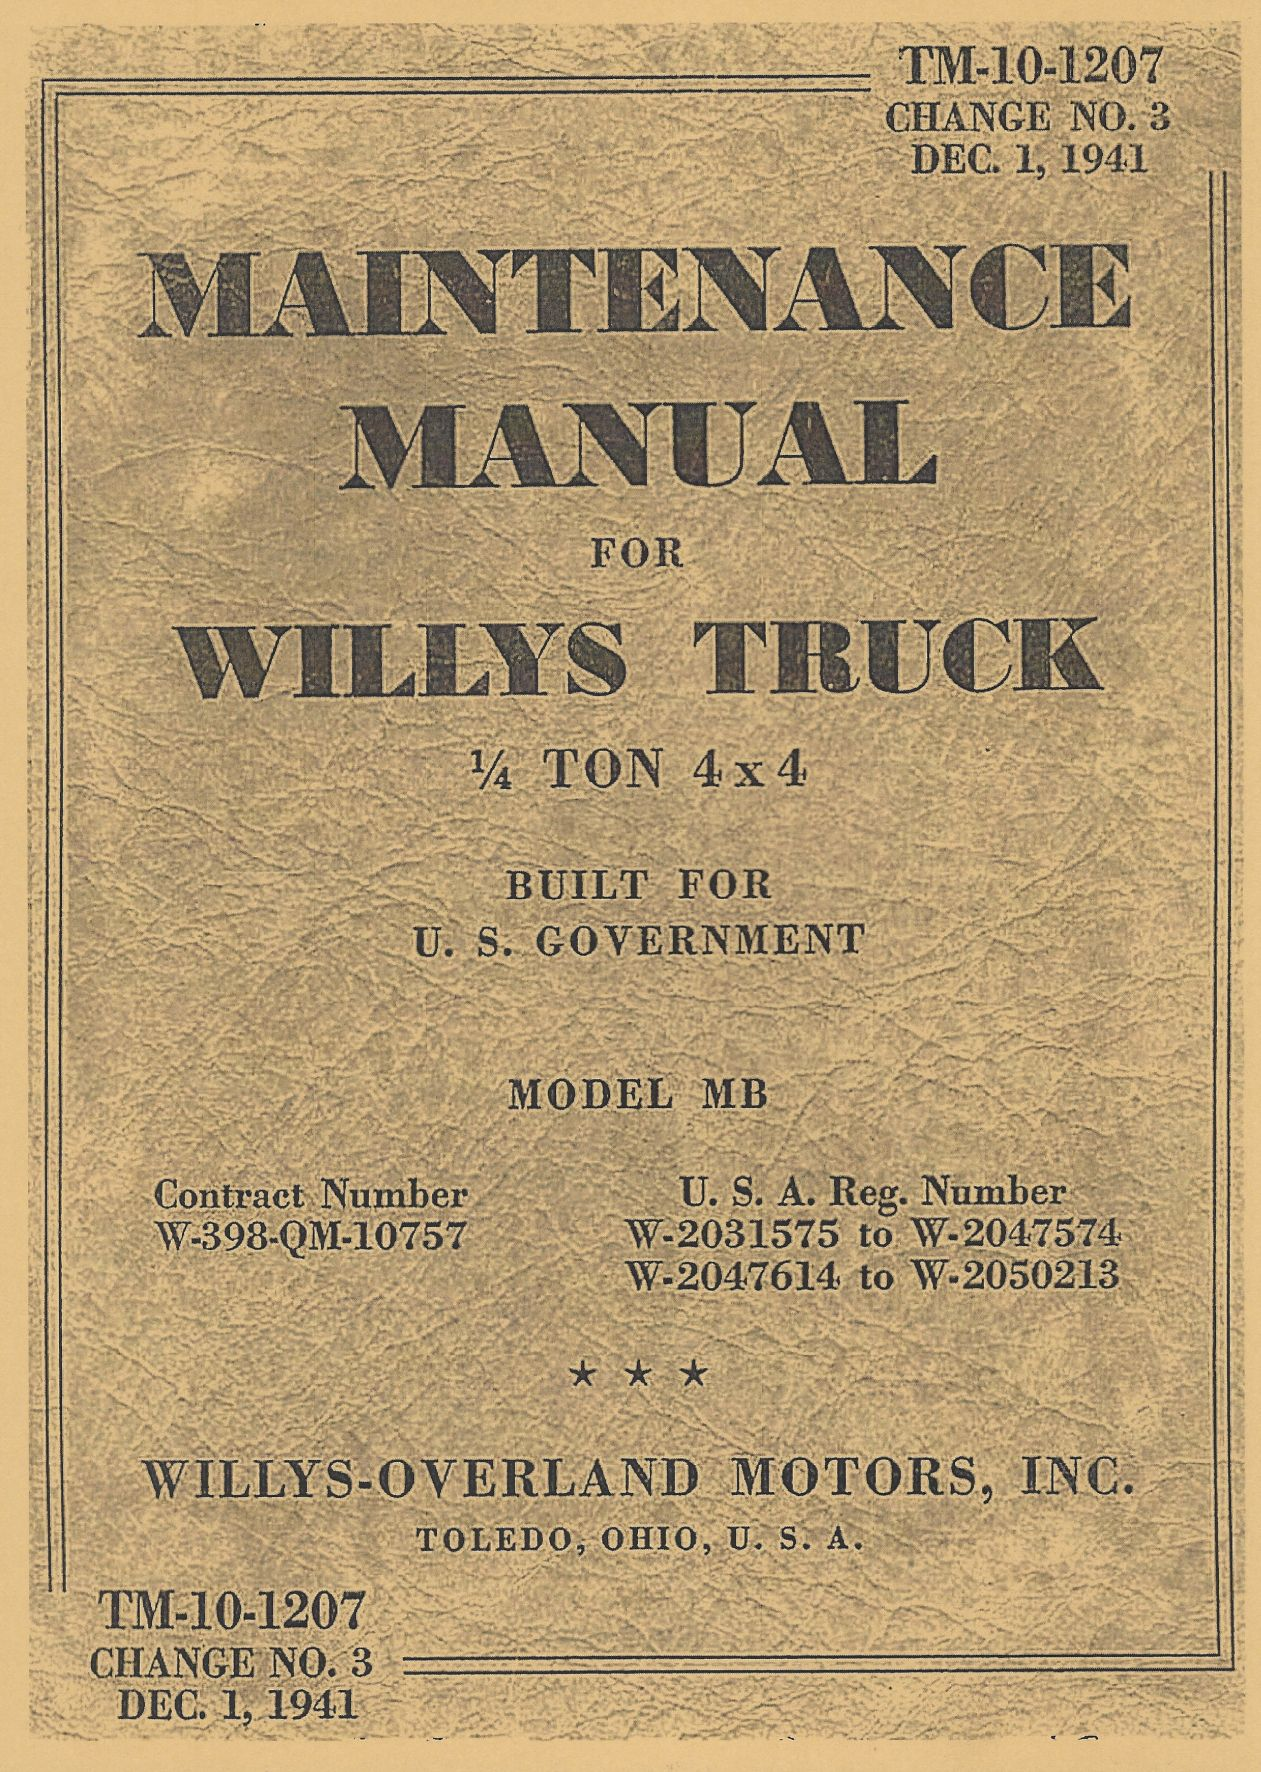 TM 10-1207 US MAINTENANCE MANUAL FOR WILLYS MB